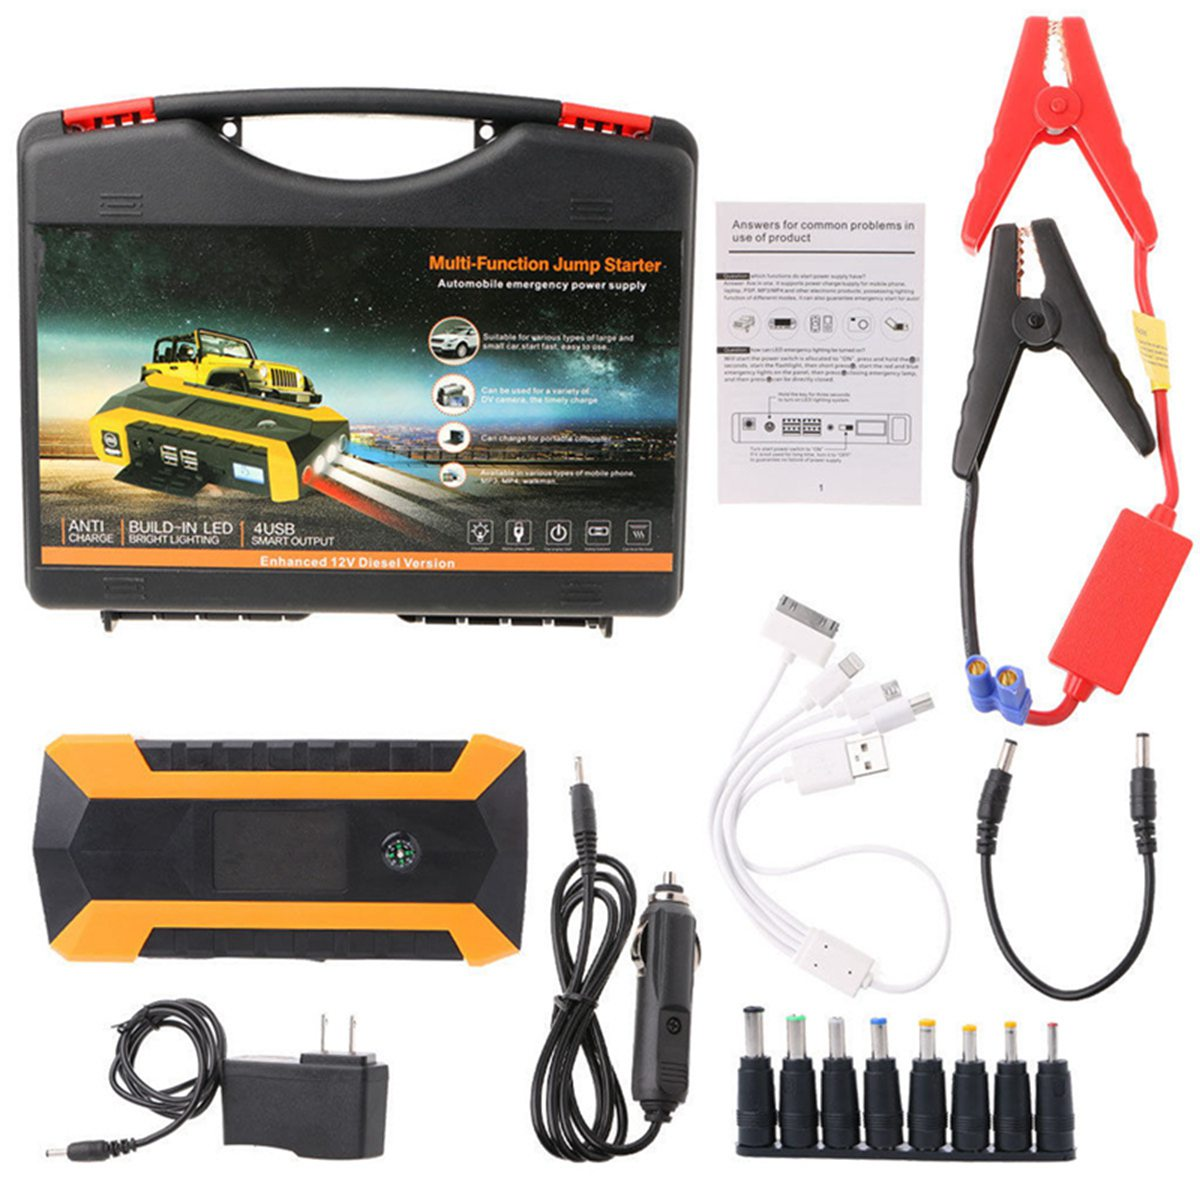 89800mAh 12V 4USB Car Jump Starter Car Battery Charger Starting Booster Power Bank Tool Kit For Auto Starting Device multifunction jump starter 89800mah 12v 4usb 600a portable car battery booster charger booster power bank starting device